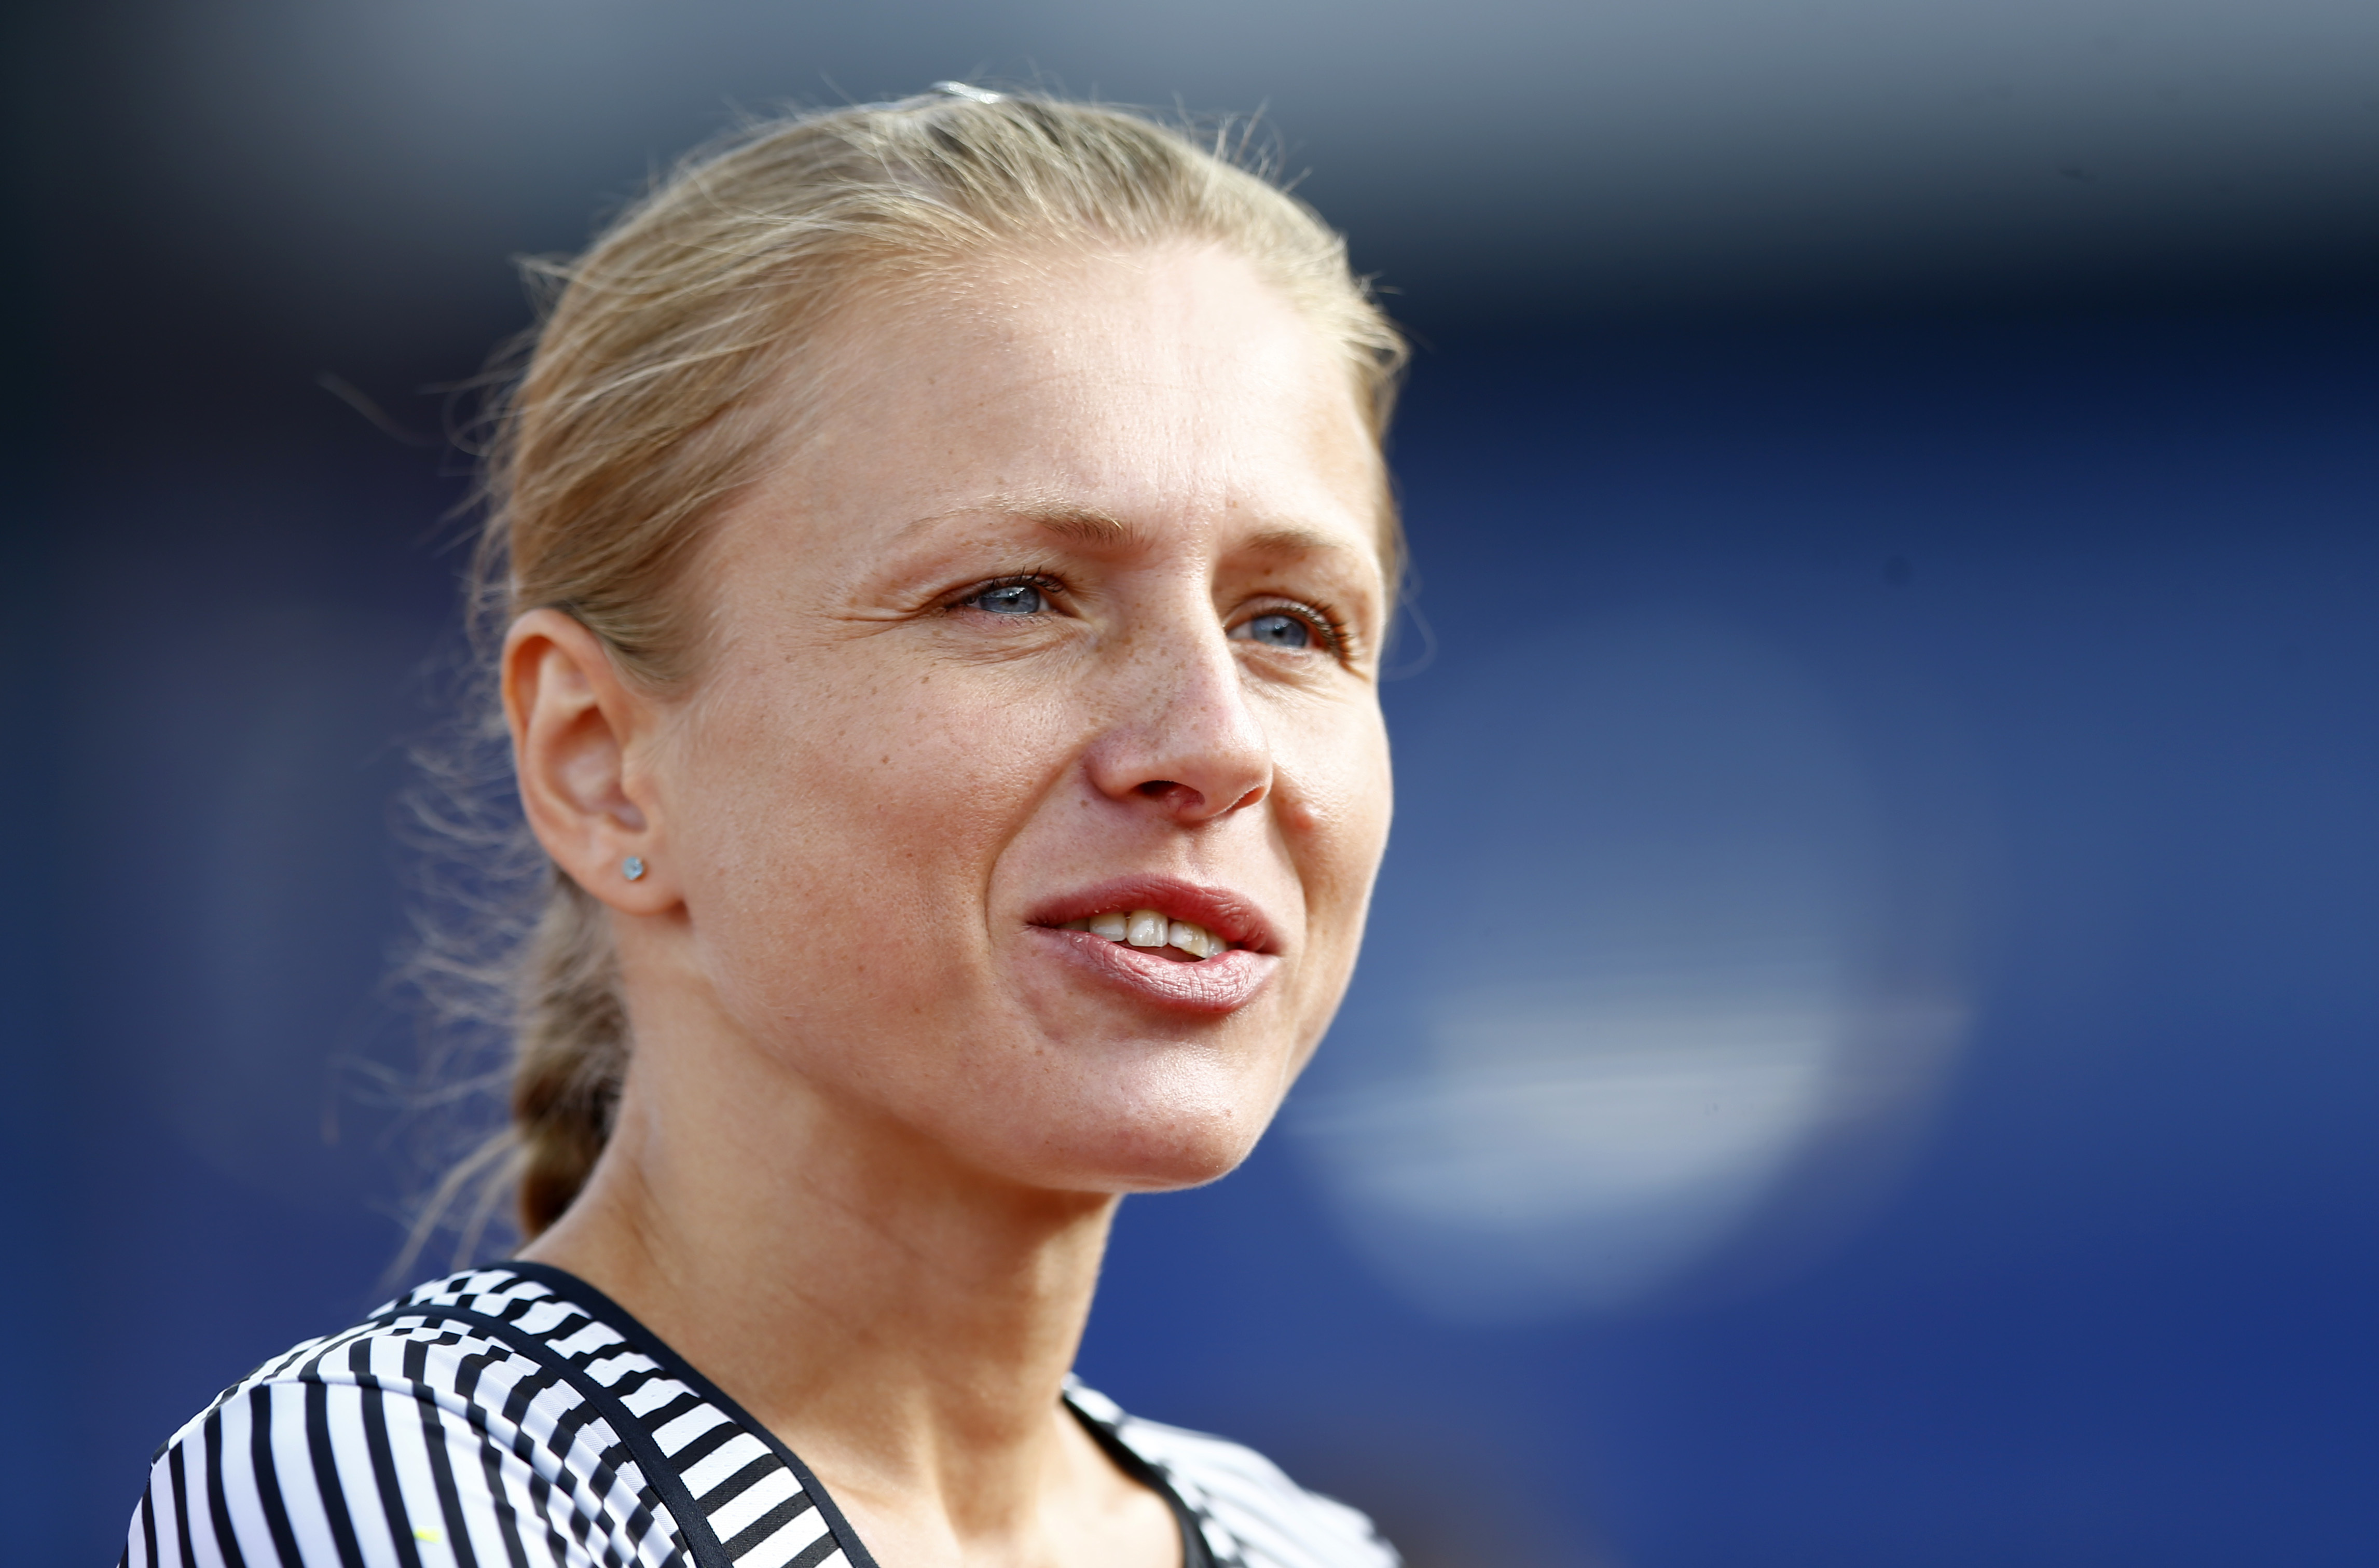 FILE - This is a Wednesday, July 6, 2016 file photo of Russian doping whistleblower Yulia Stepanova who ran under a neutral flag smiles as she arrives in the stadium to compete in a women's 800m heat during the European Athletics Championships in Amsterda